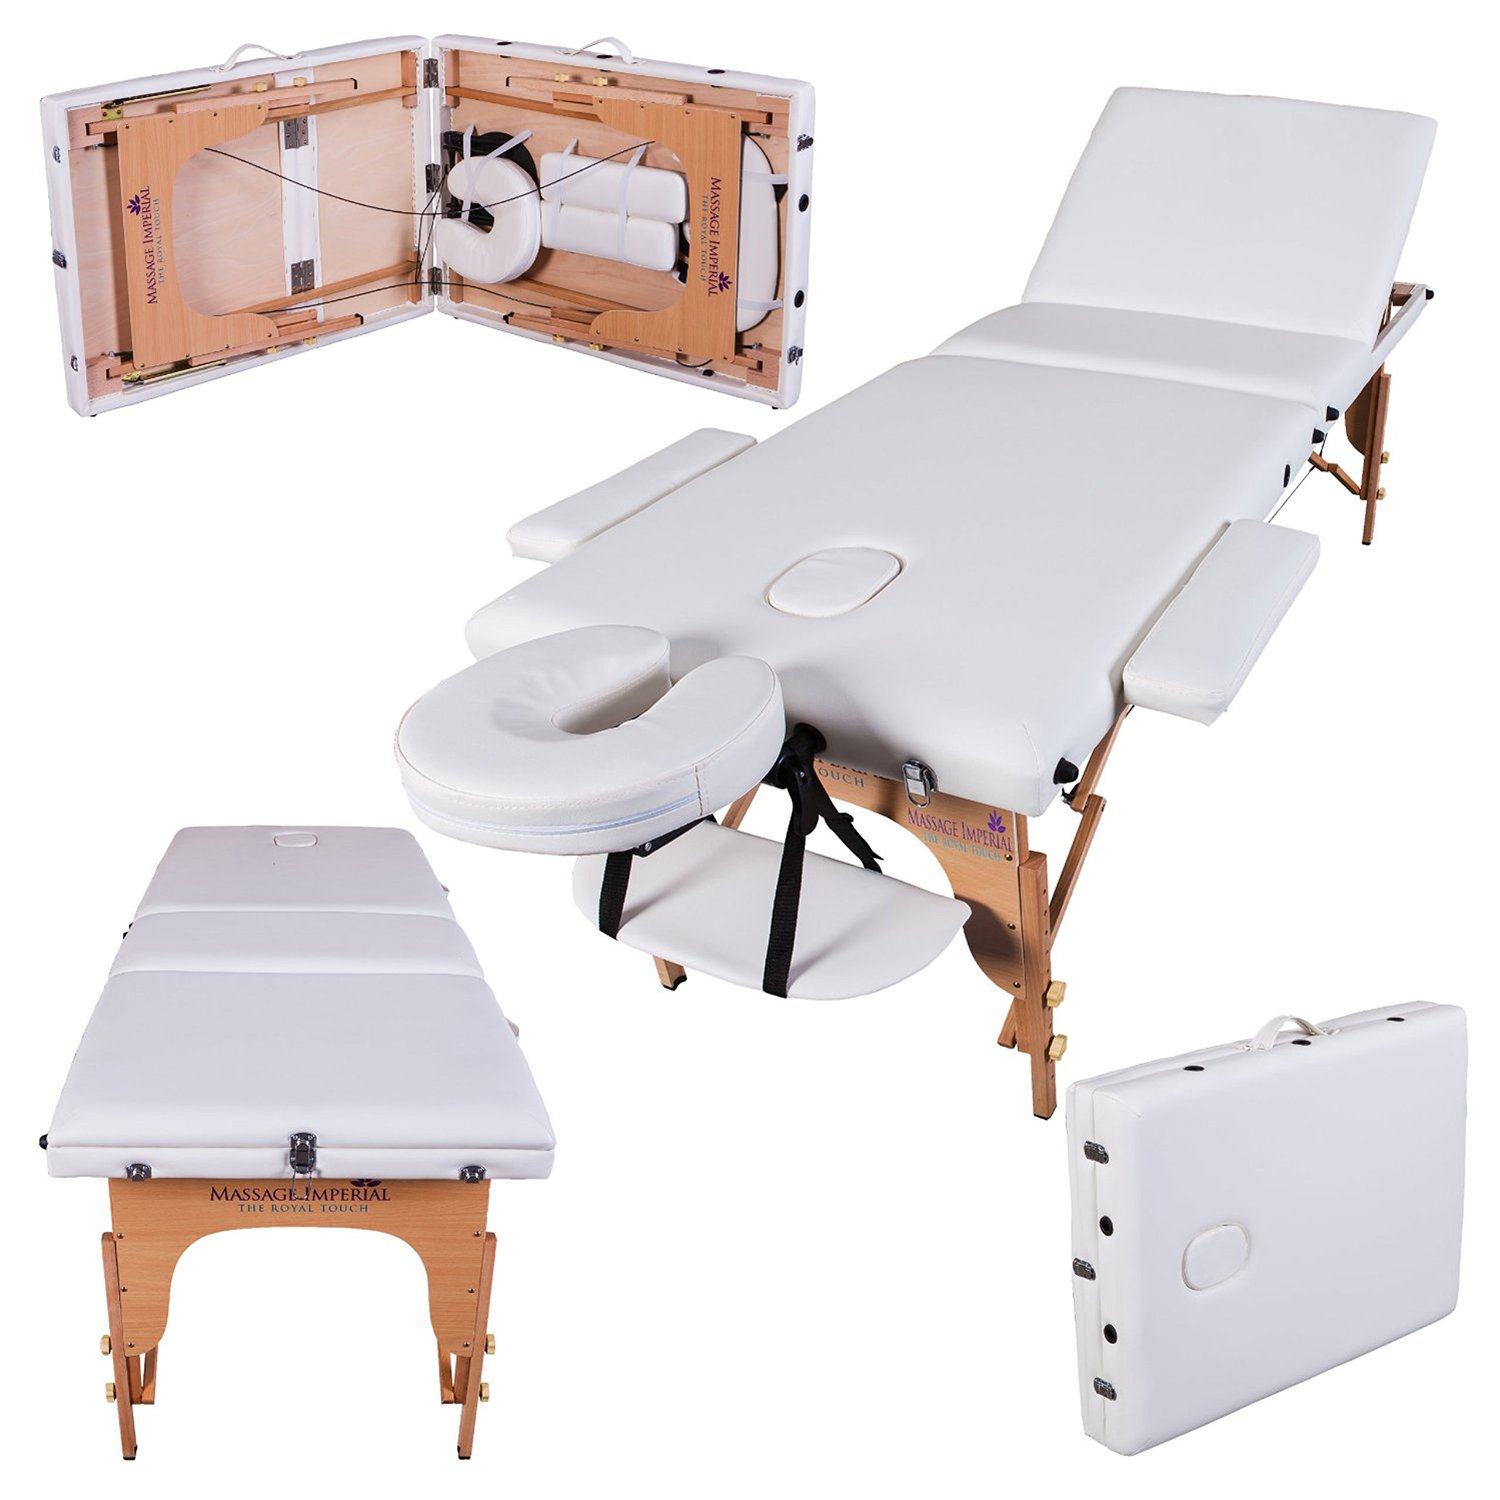 Acheter table pliante table pliable table rabattable table - Table massage pliable ...